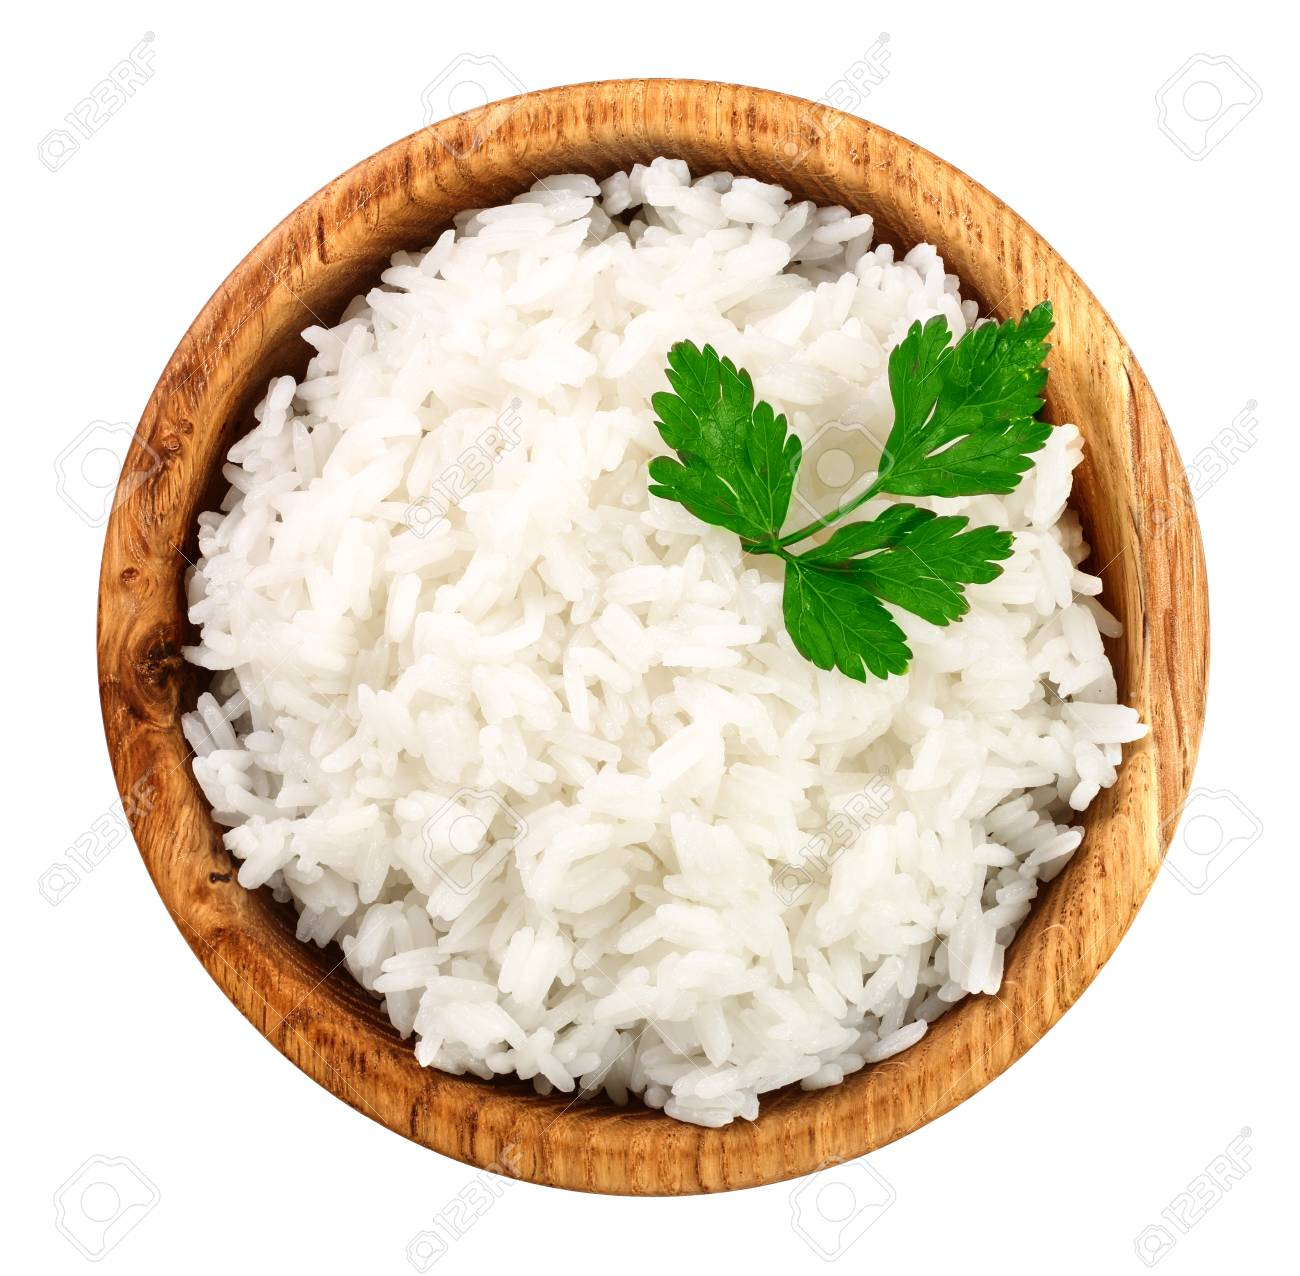 rice in a wooden bowl isolated on white background. Top view. Flat lay. - 105856567